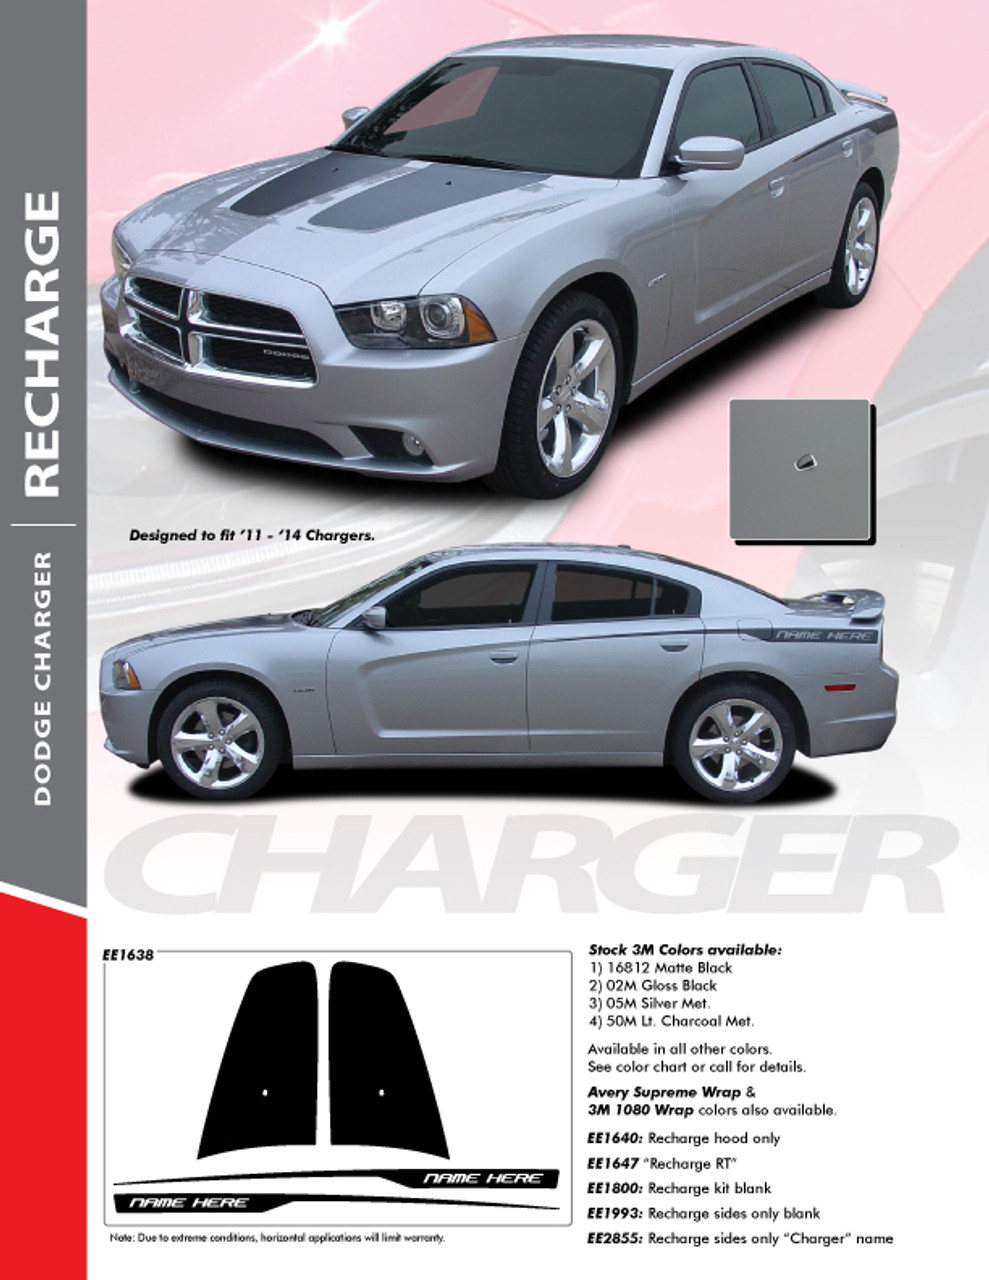 2006 Dodge Charger Decals : dodge, charger, decals, Dodge, Charger, Stripes, Split, Graphics, Decals, 2011-2014